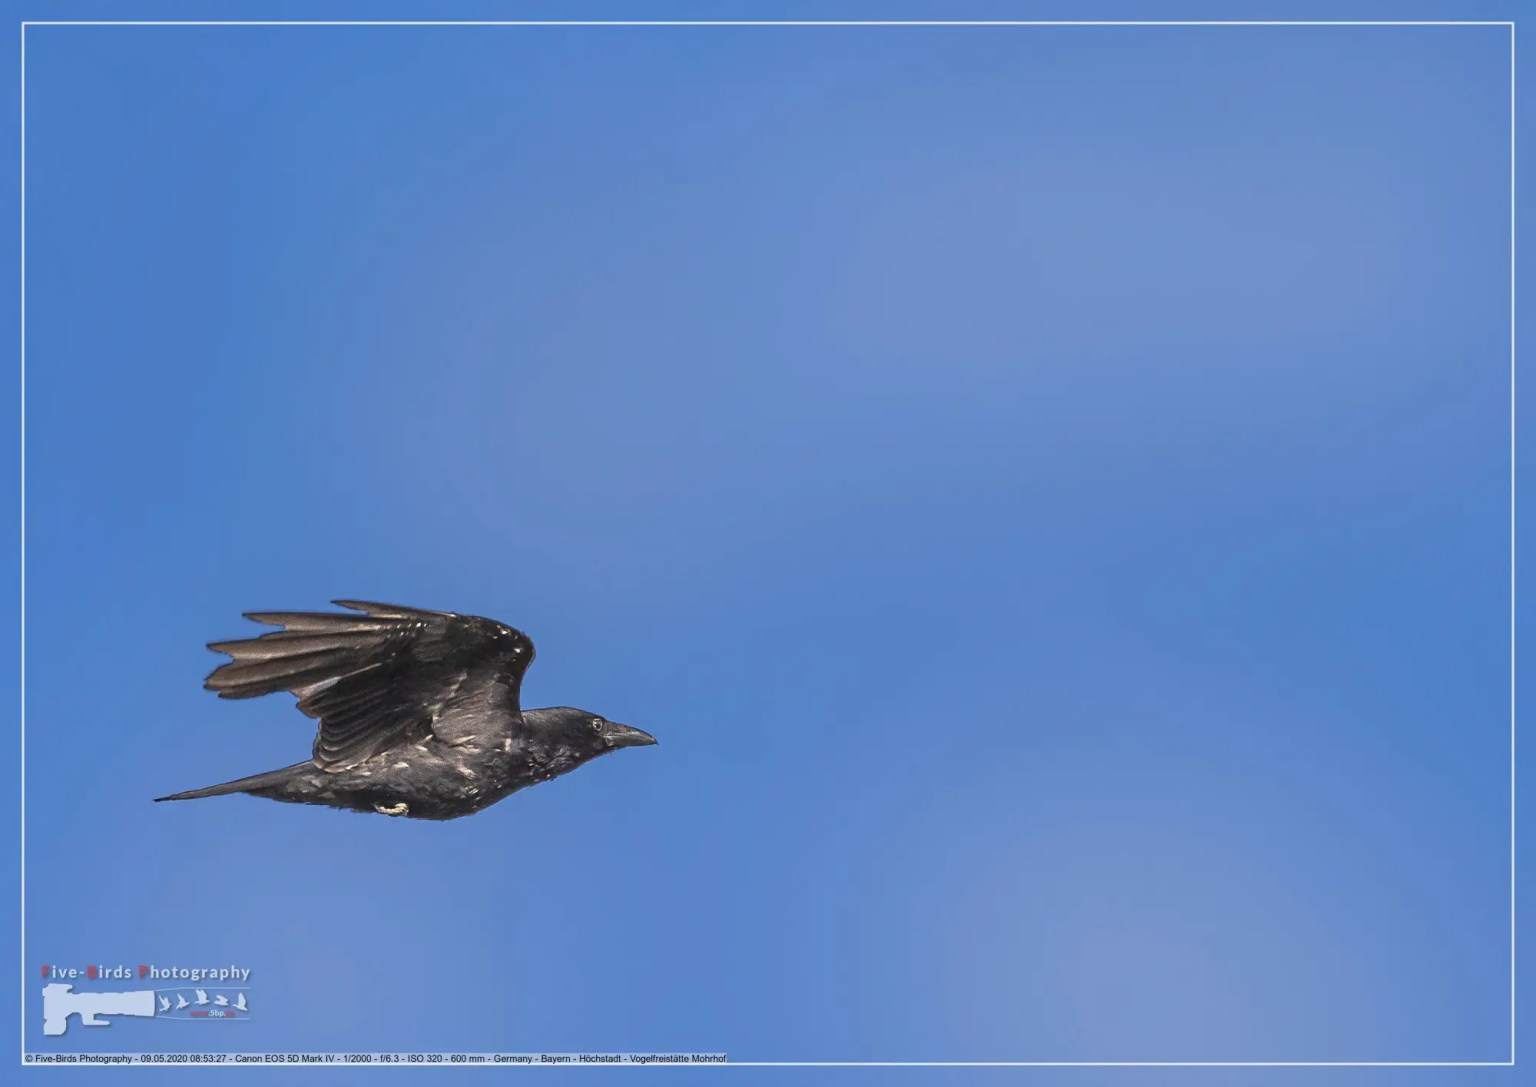 Carrion crow in a bird sanctuary in southern Germany